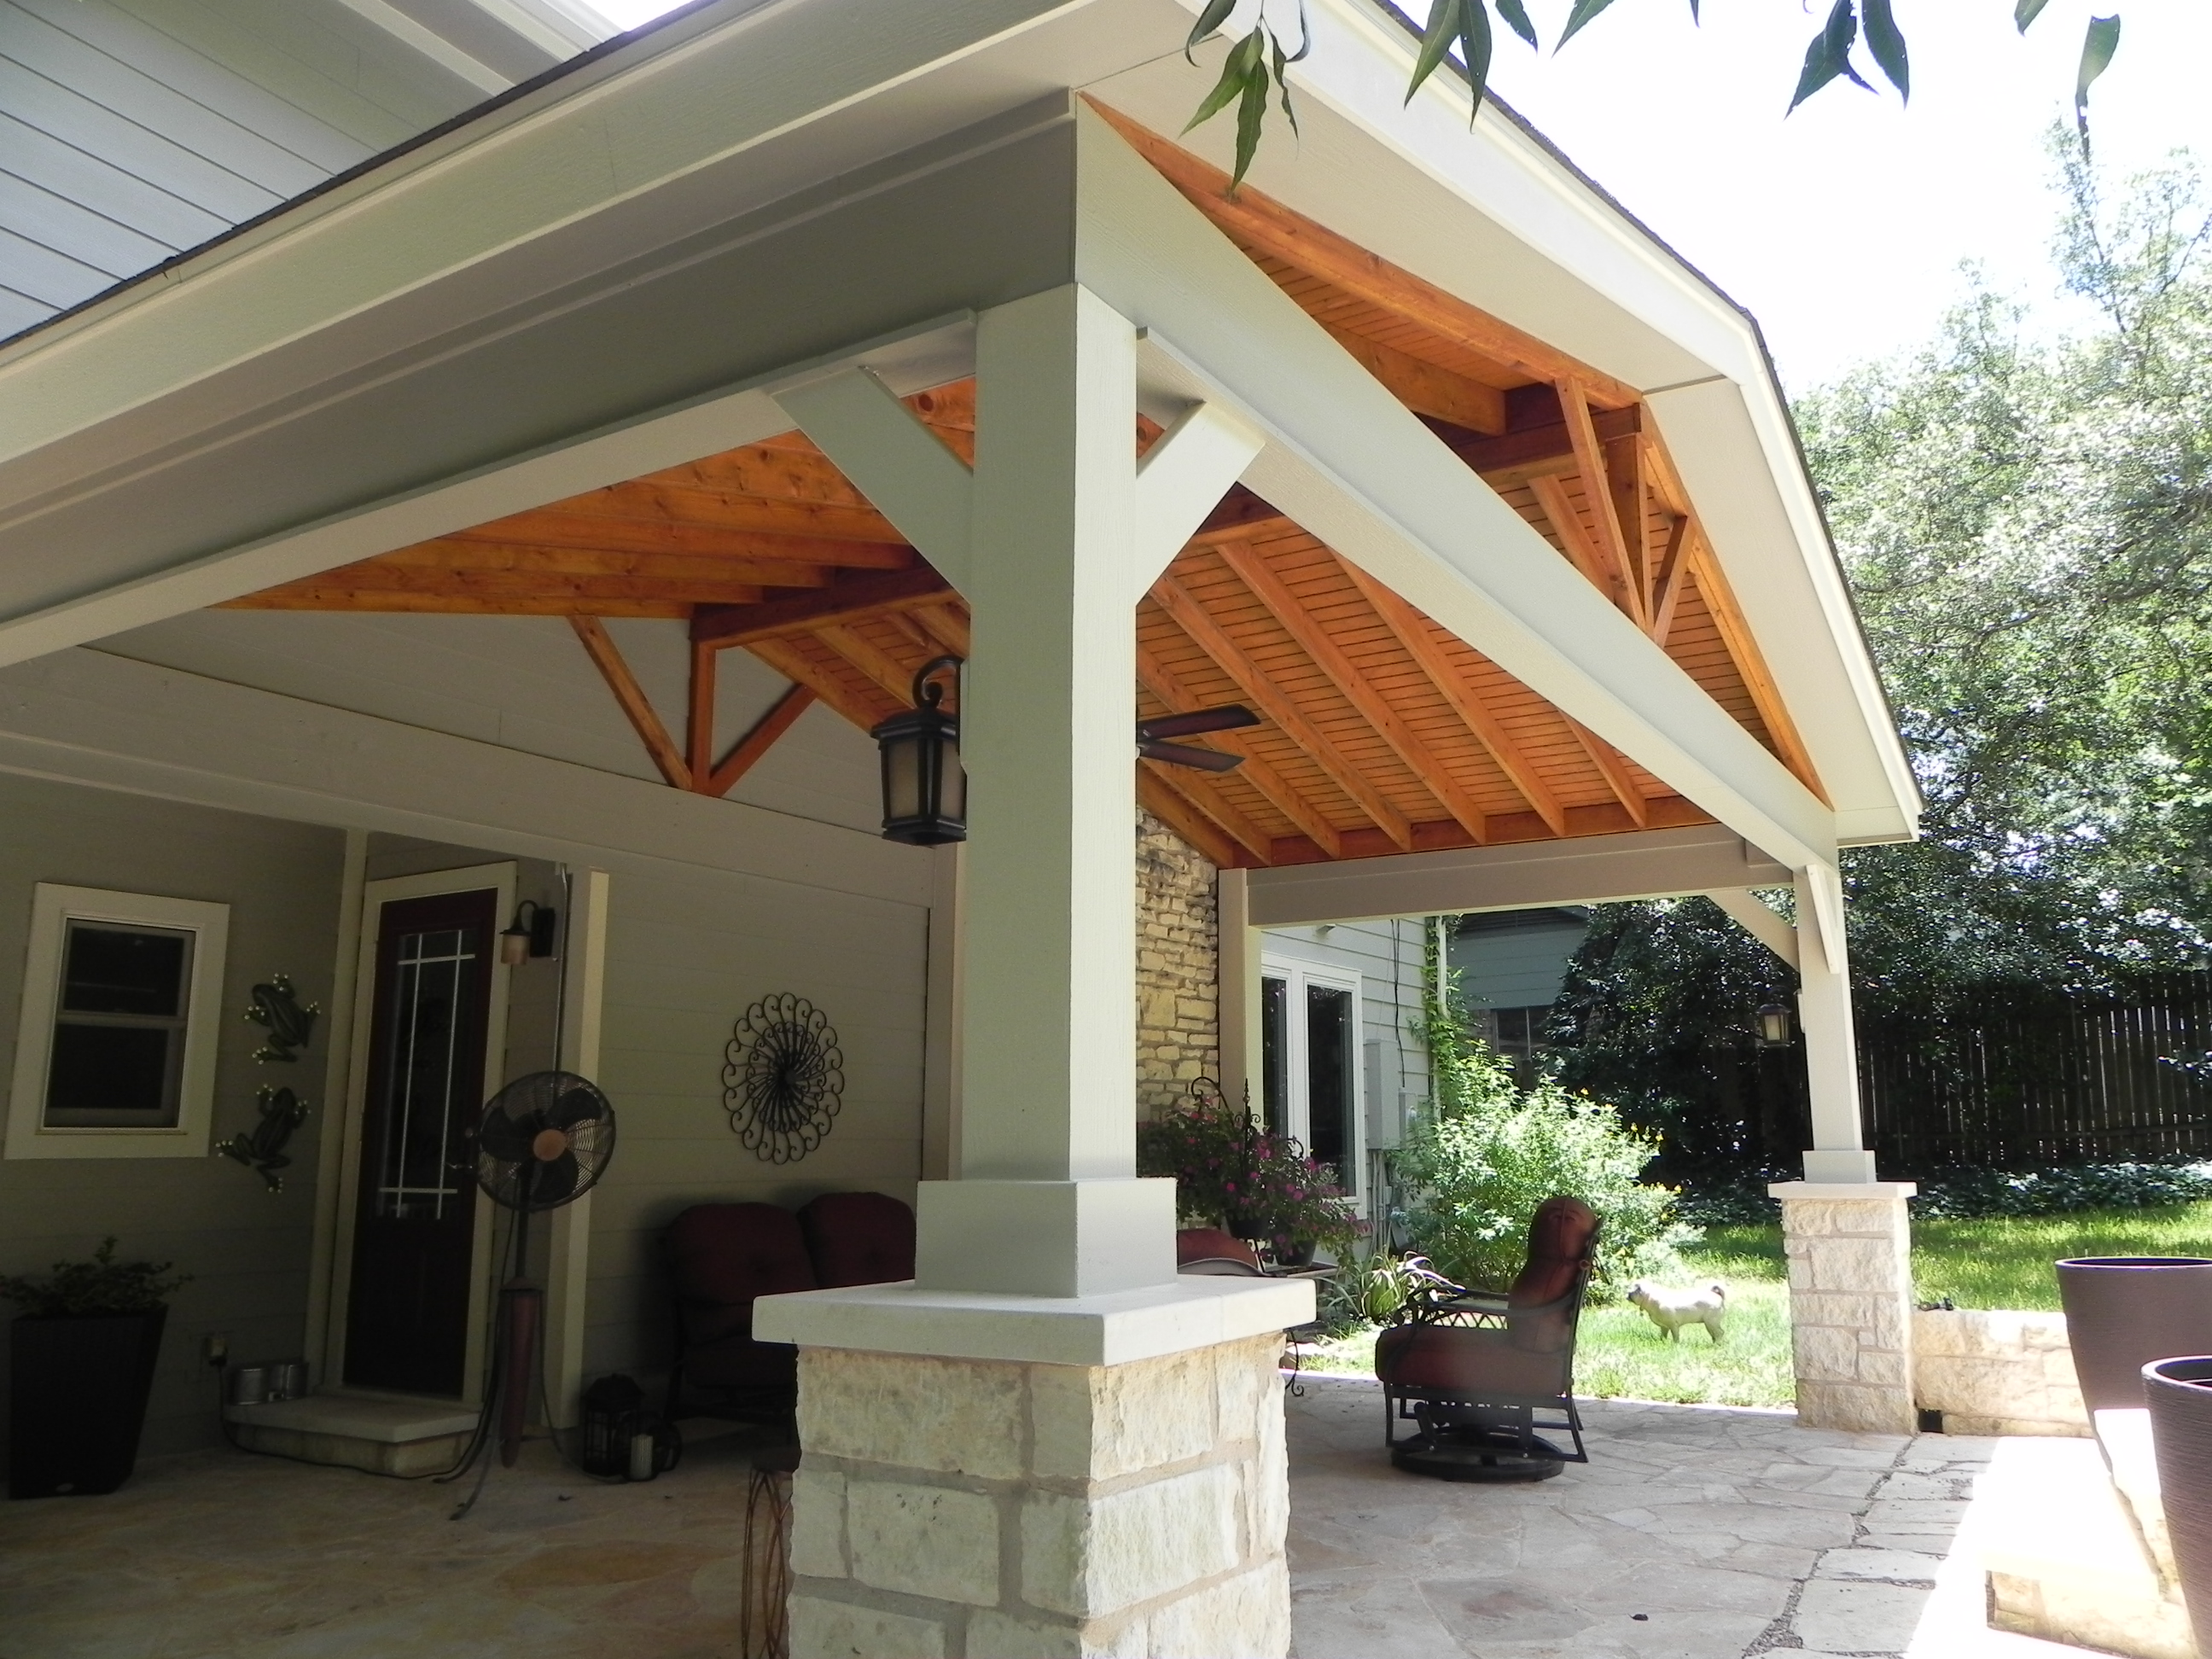 Austin decks pergolas covered patios porches more for Outdoor porches and patios